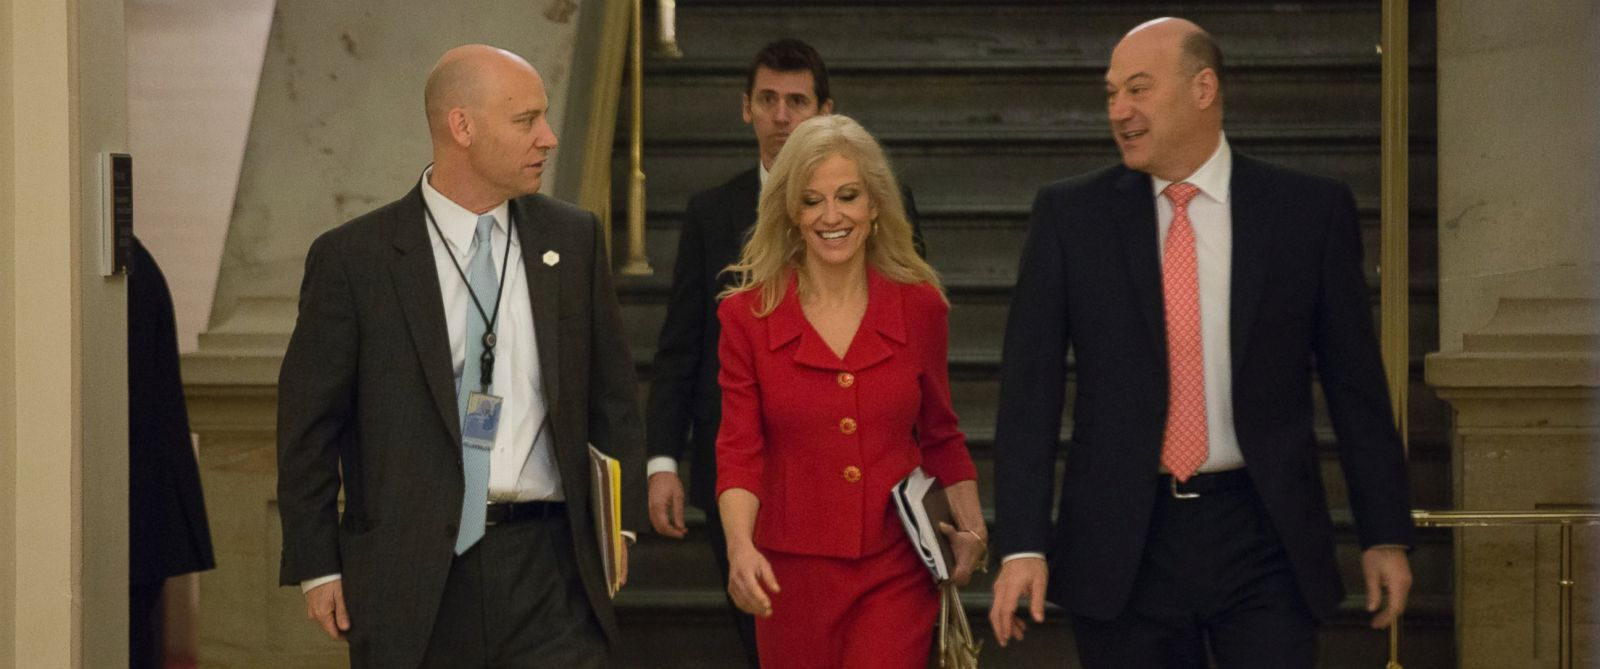 PHOTO: Marc Short (left), President Trumps director of legislative affairs, and Kellyanne Conway, White House adviser, arrive on Capitol Hill for the weekly GOP meeting, March 21, 2017.